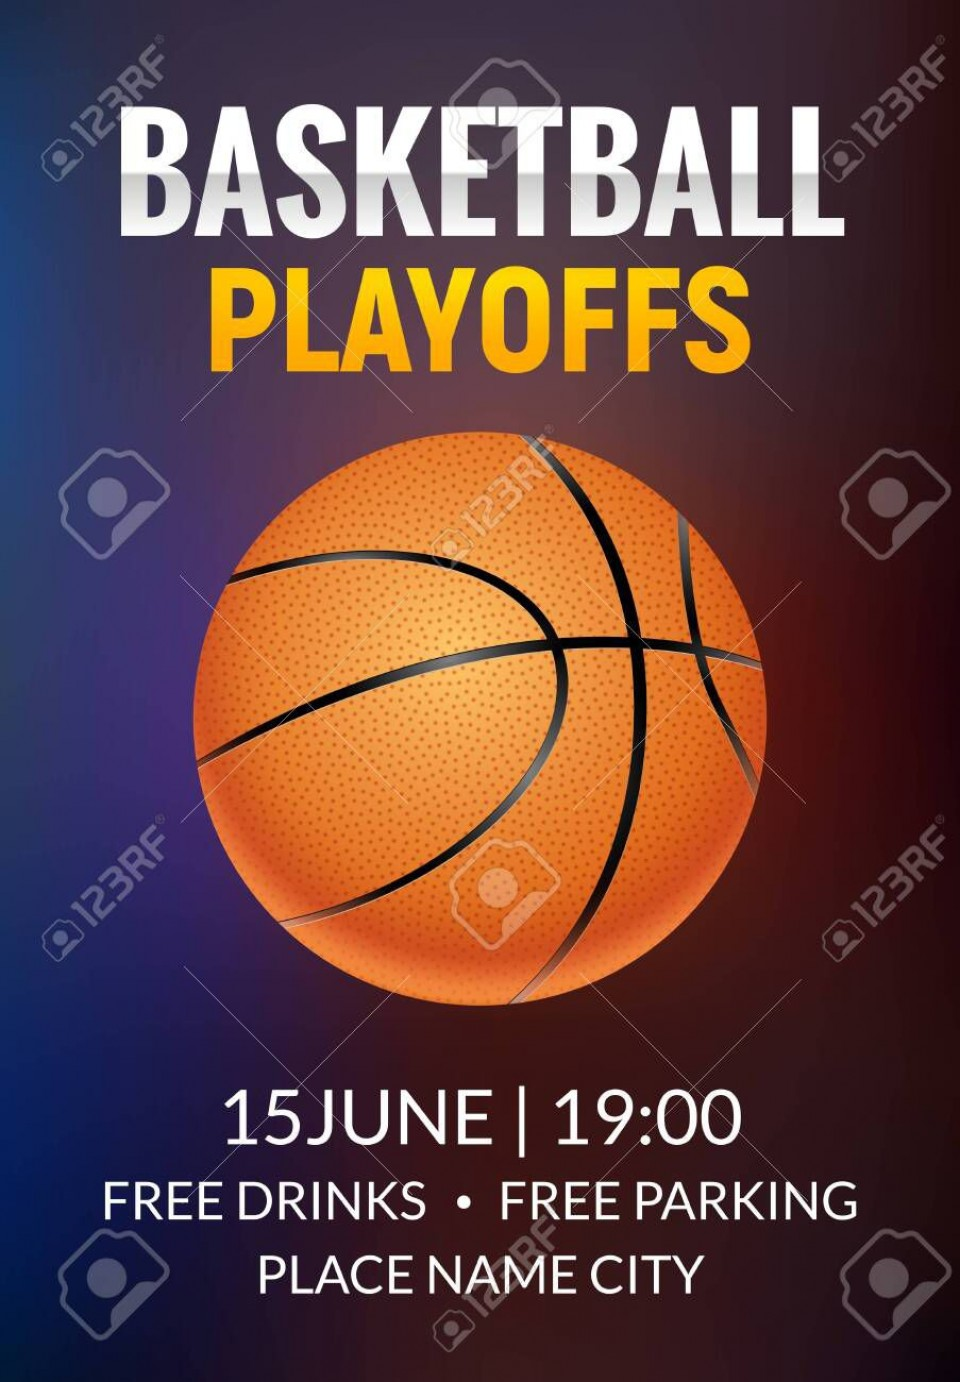 002 Formidable Basketball Tournament Flyer Template High Resolution  3 On Free960